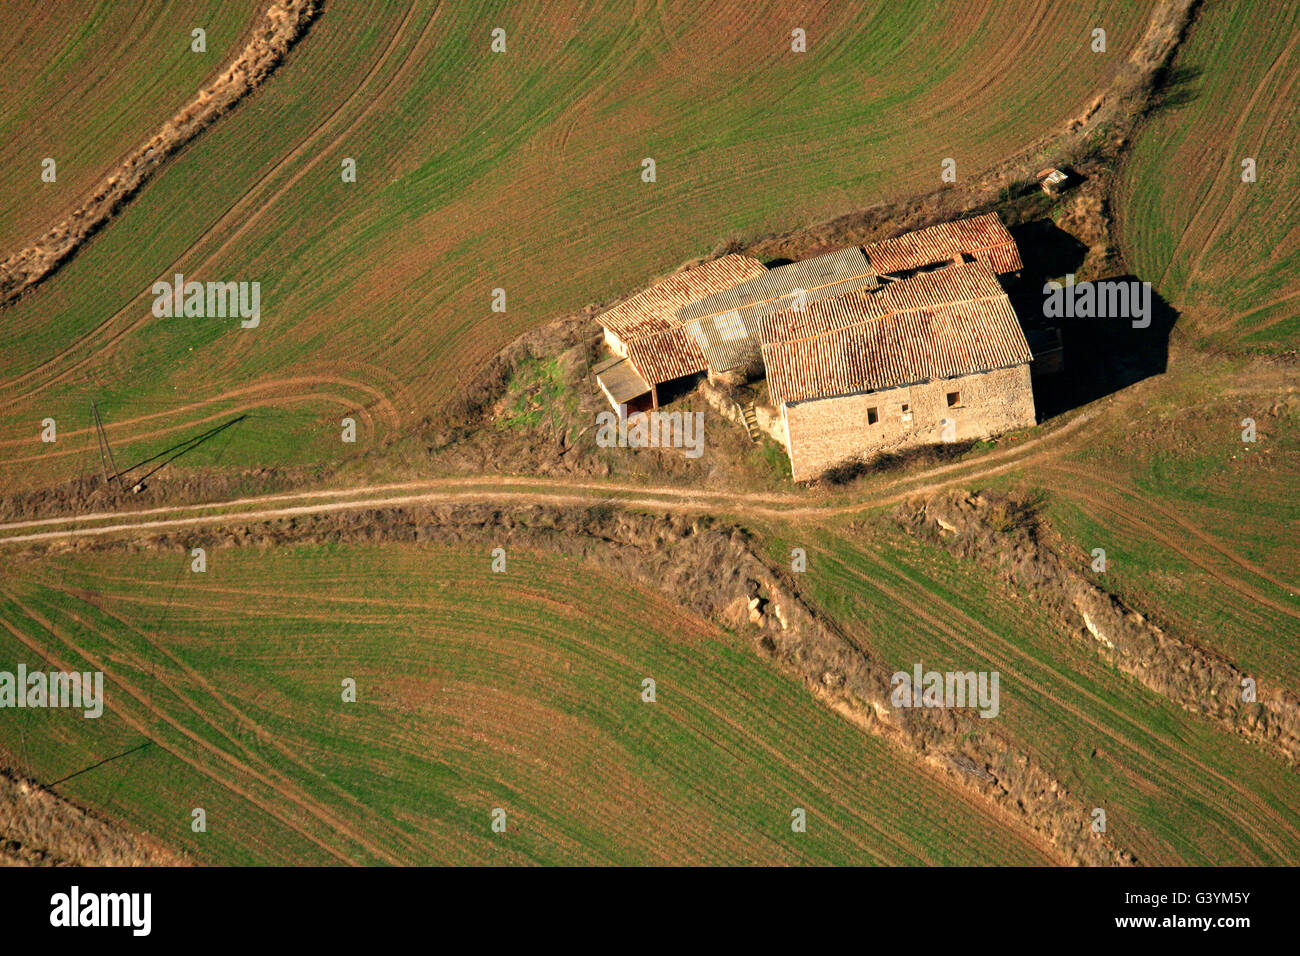 Fields and Masia. Vic. Barcelona Province. Catalonia. Spain - Stock Image